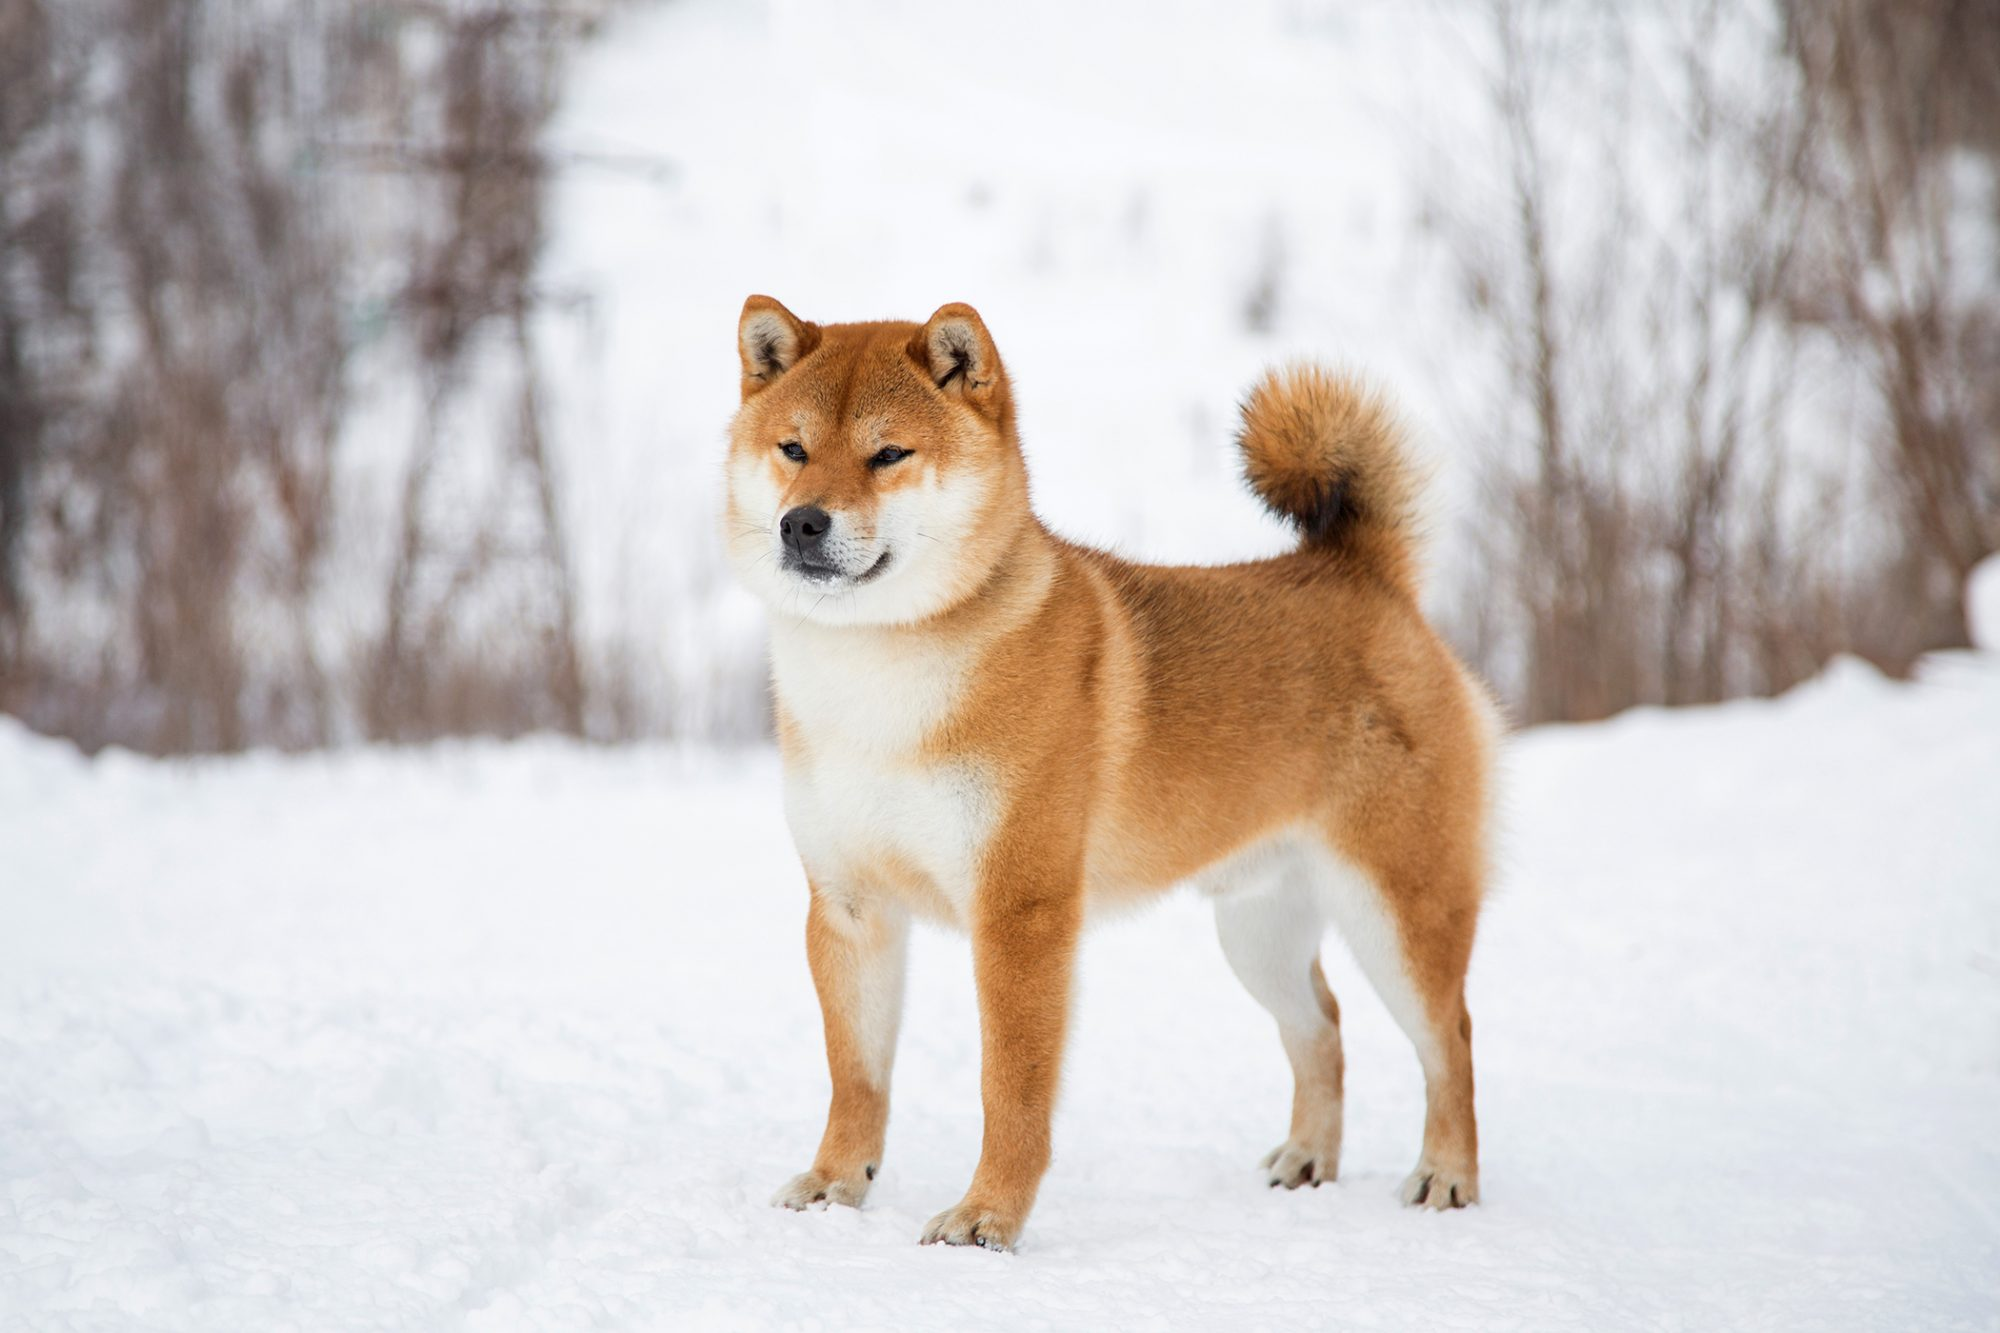 Shiba Inu dog standing in the snow